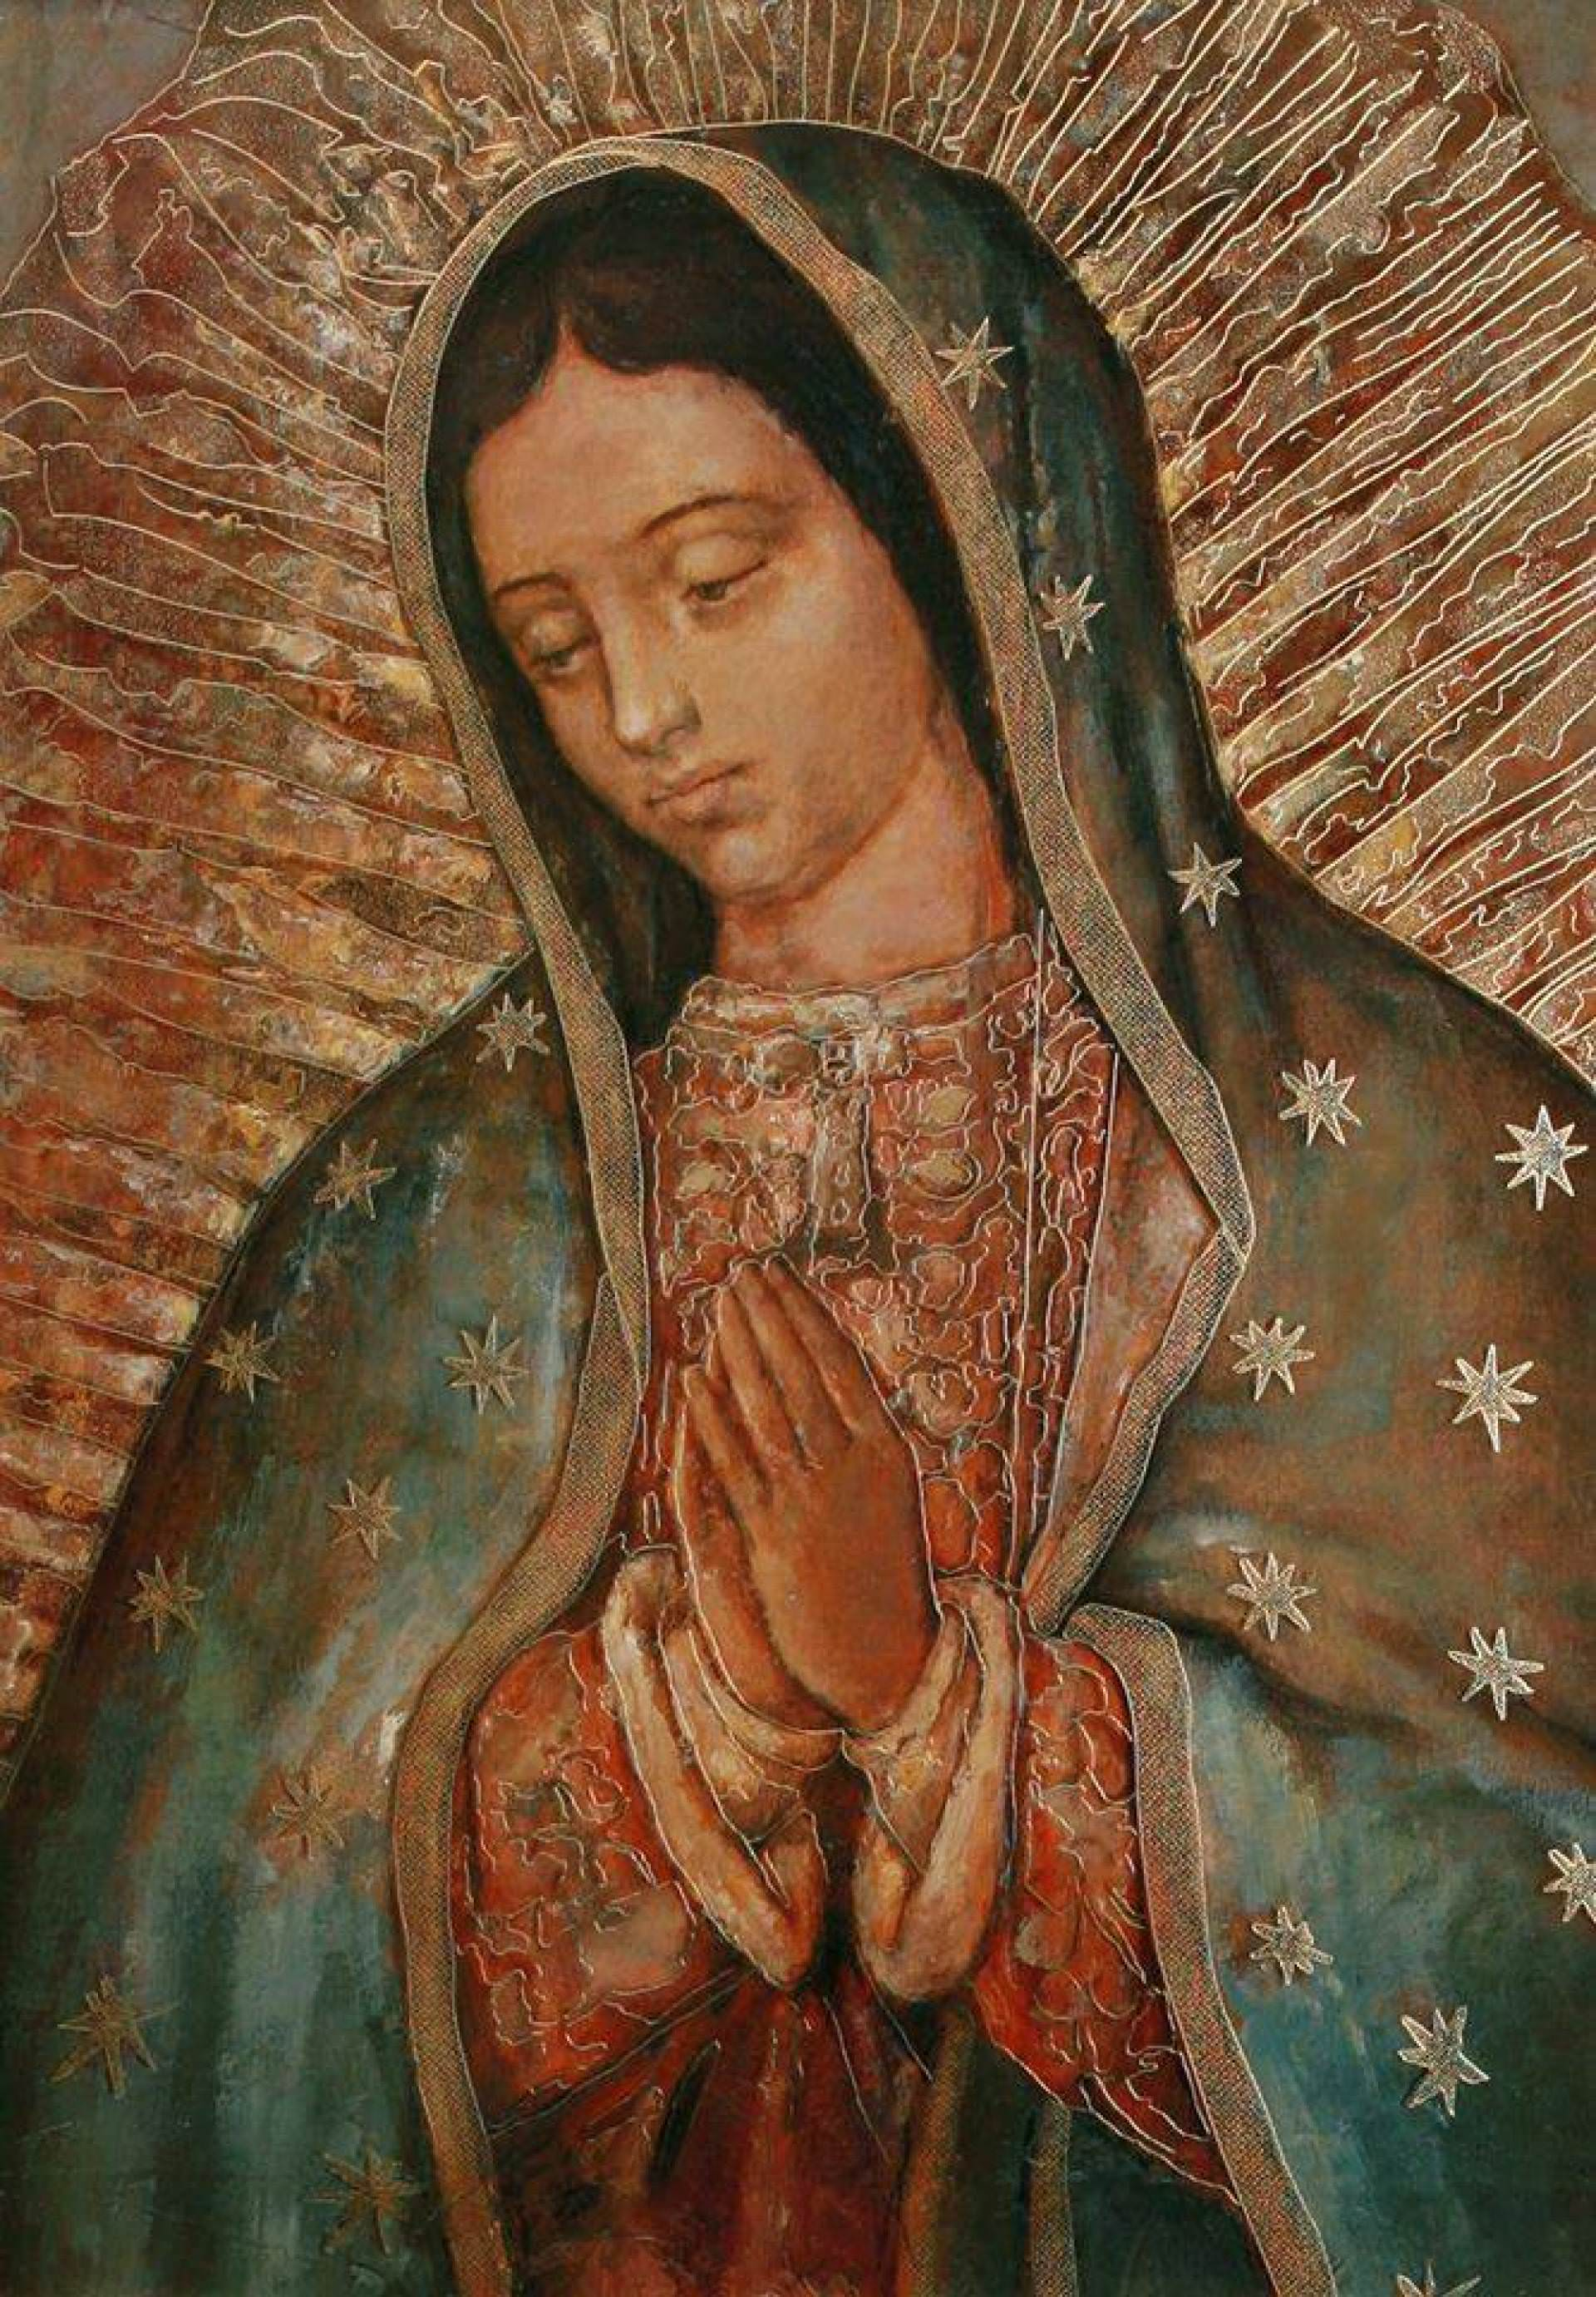 santa maria of guadalupe, virgin mary, guadeloupe, guadalupana, empress of america, marian advocation, queen of mexico